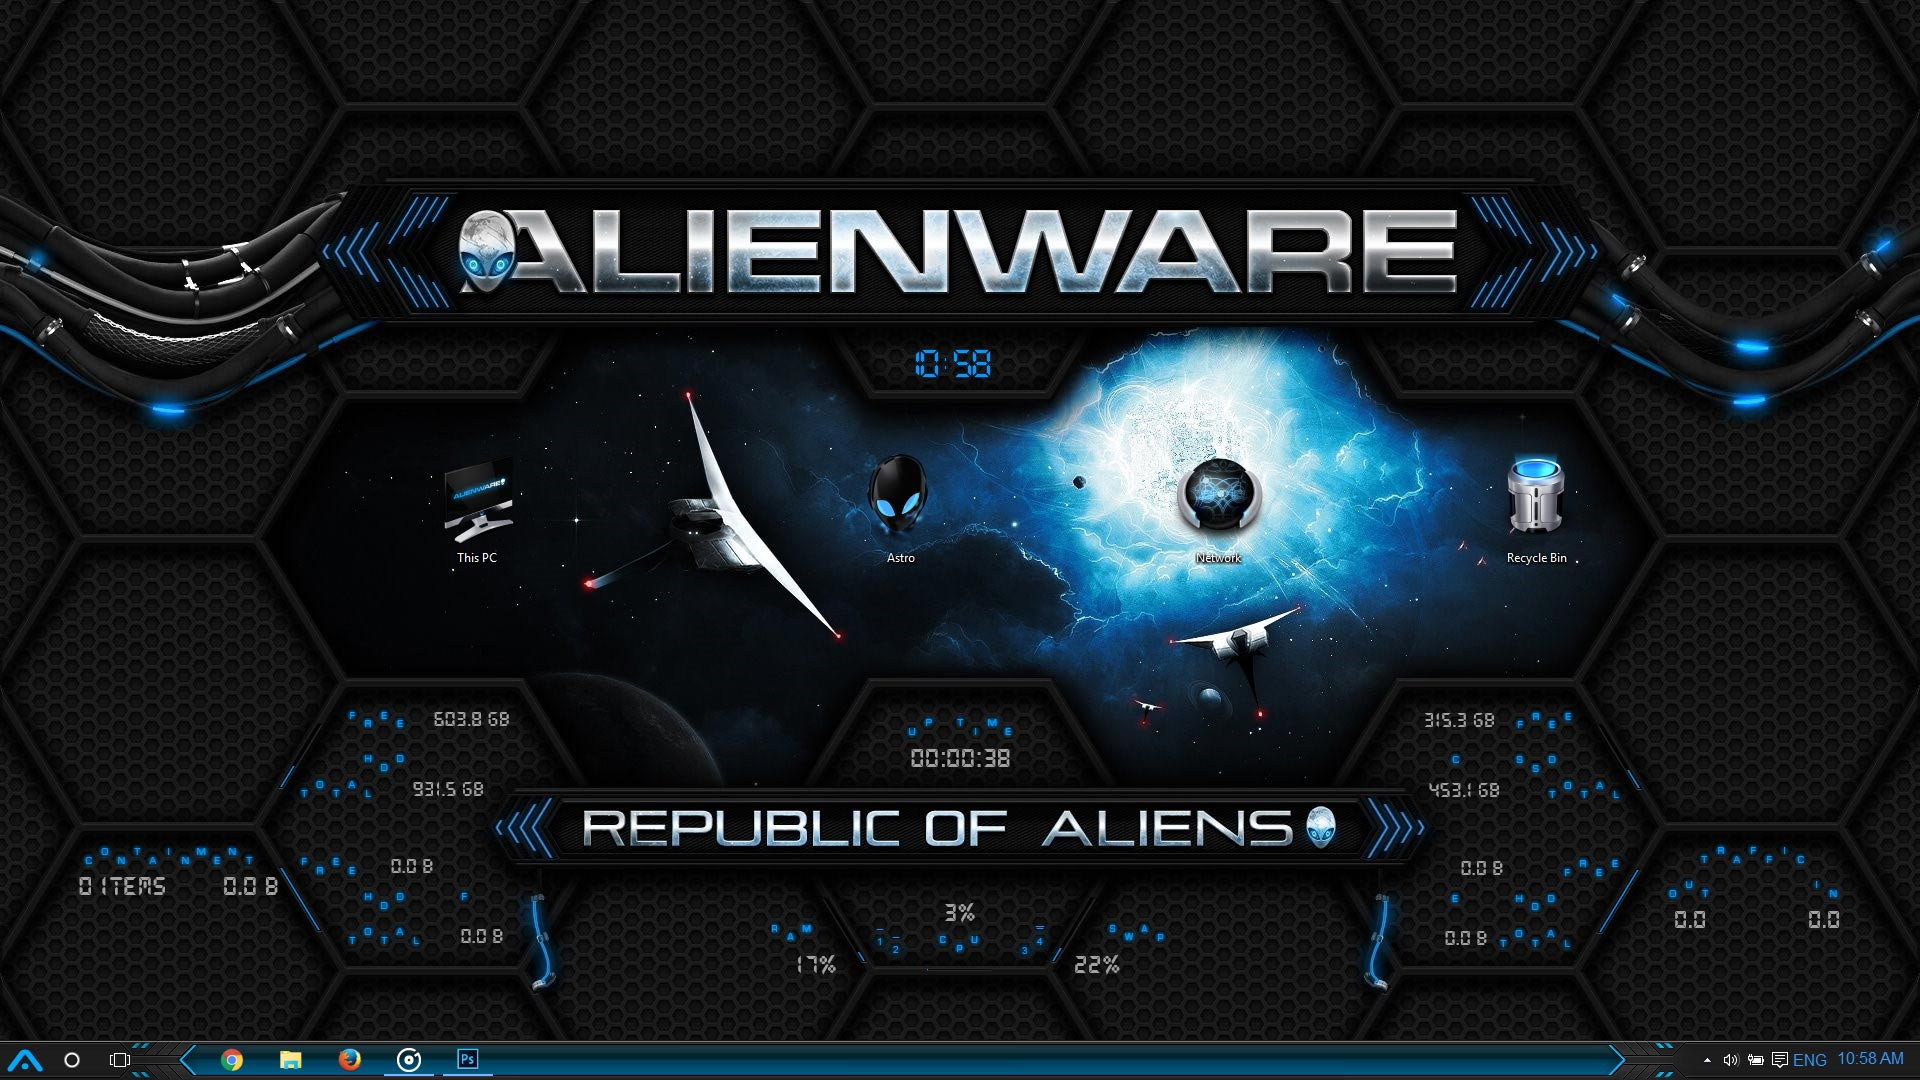 3d Live Animated Wallpaper Download For Windows 7 Ultimate Alienware Windows 10 Theme